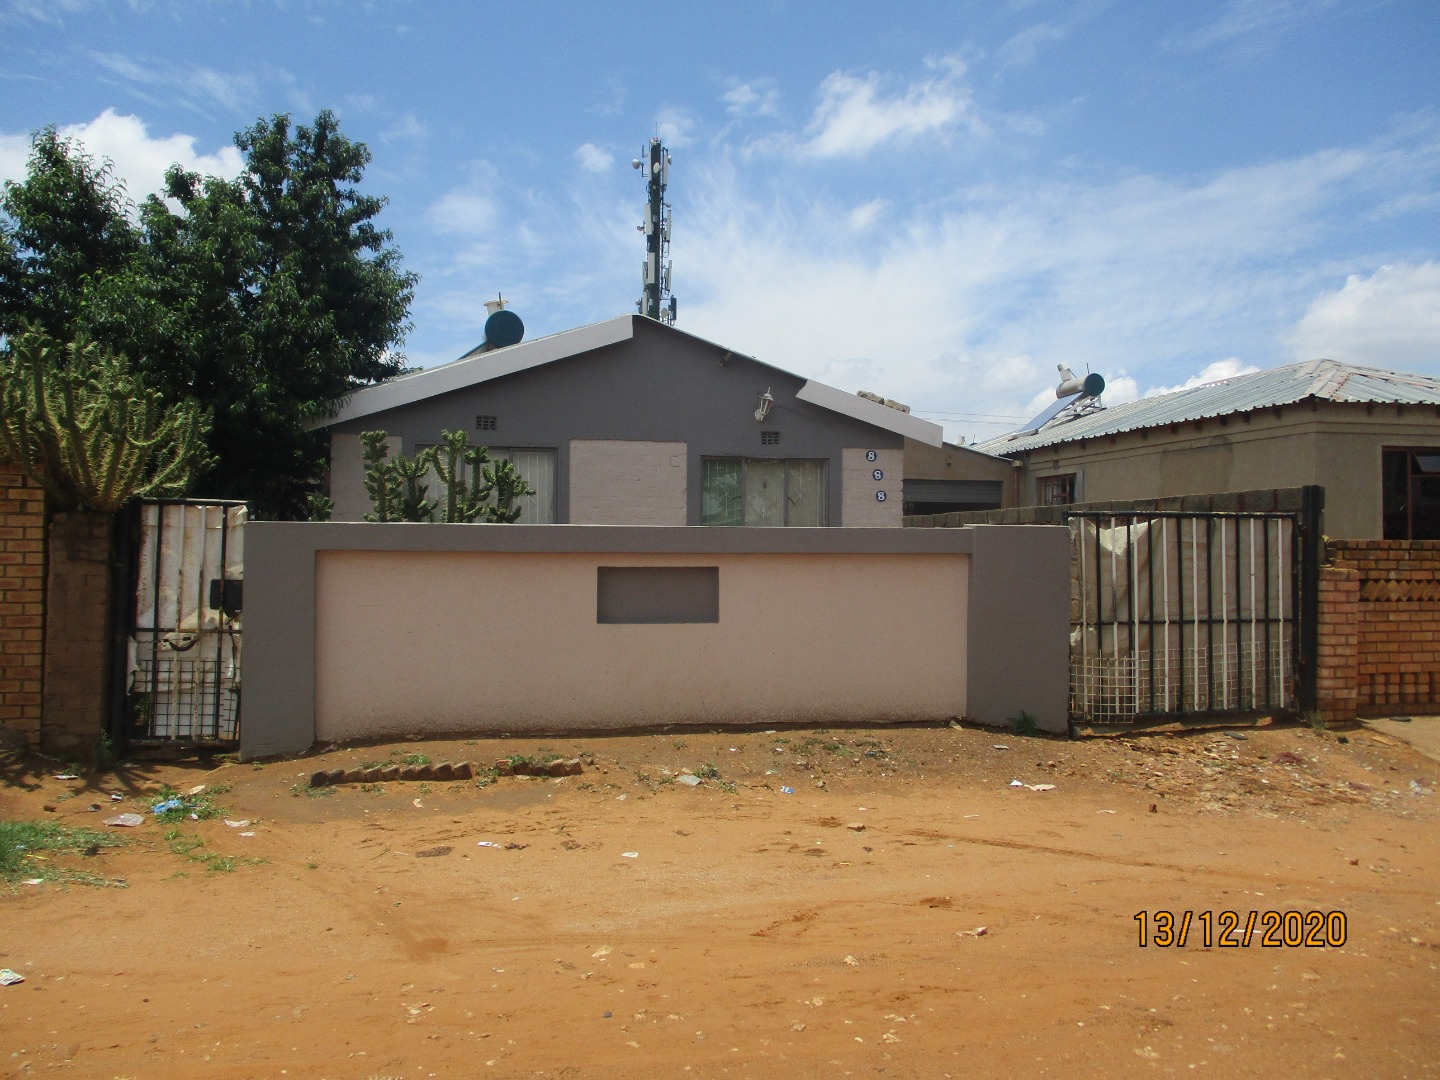 1 Bedroom House For Sale in Tshepisong